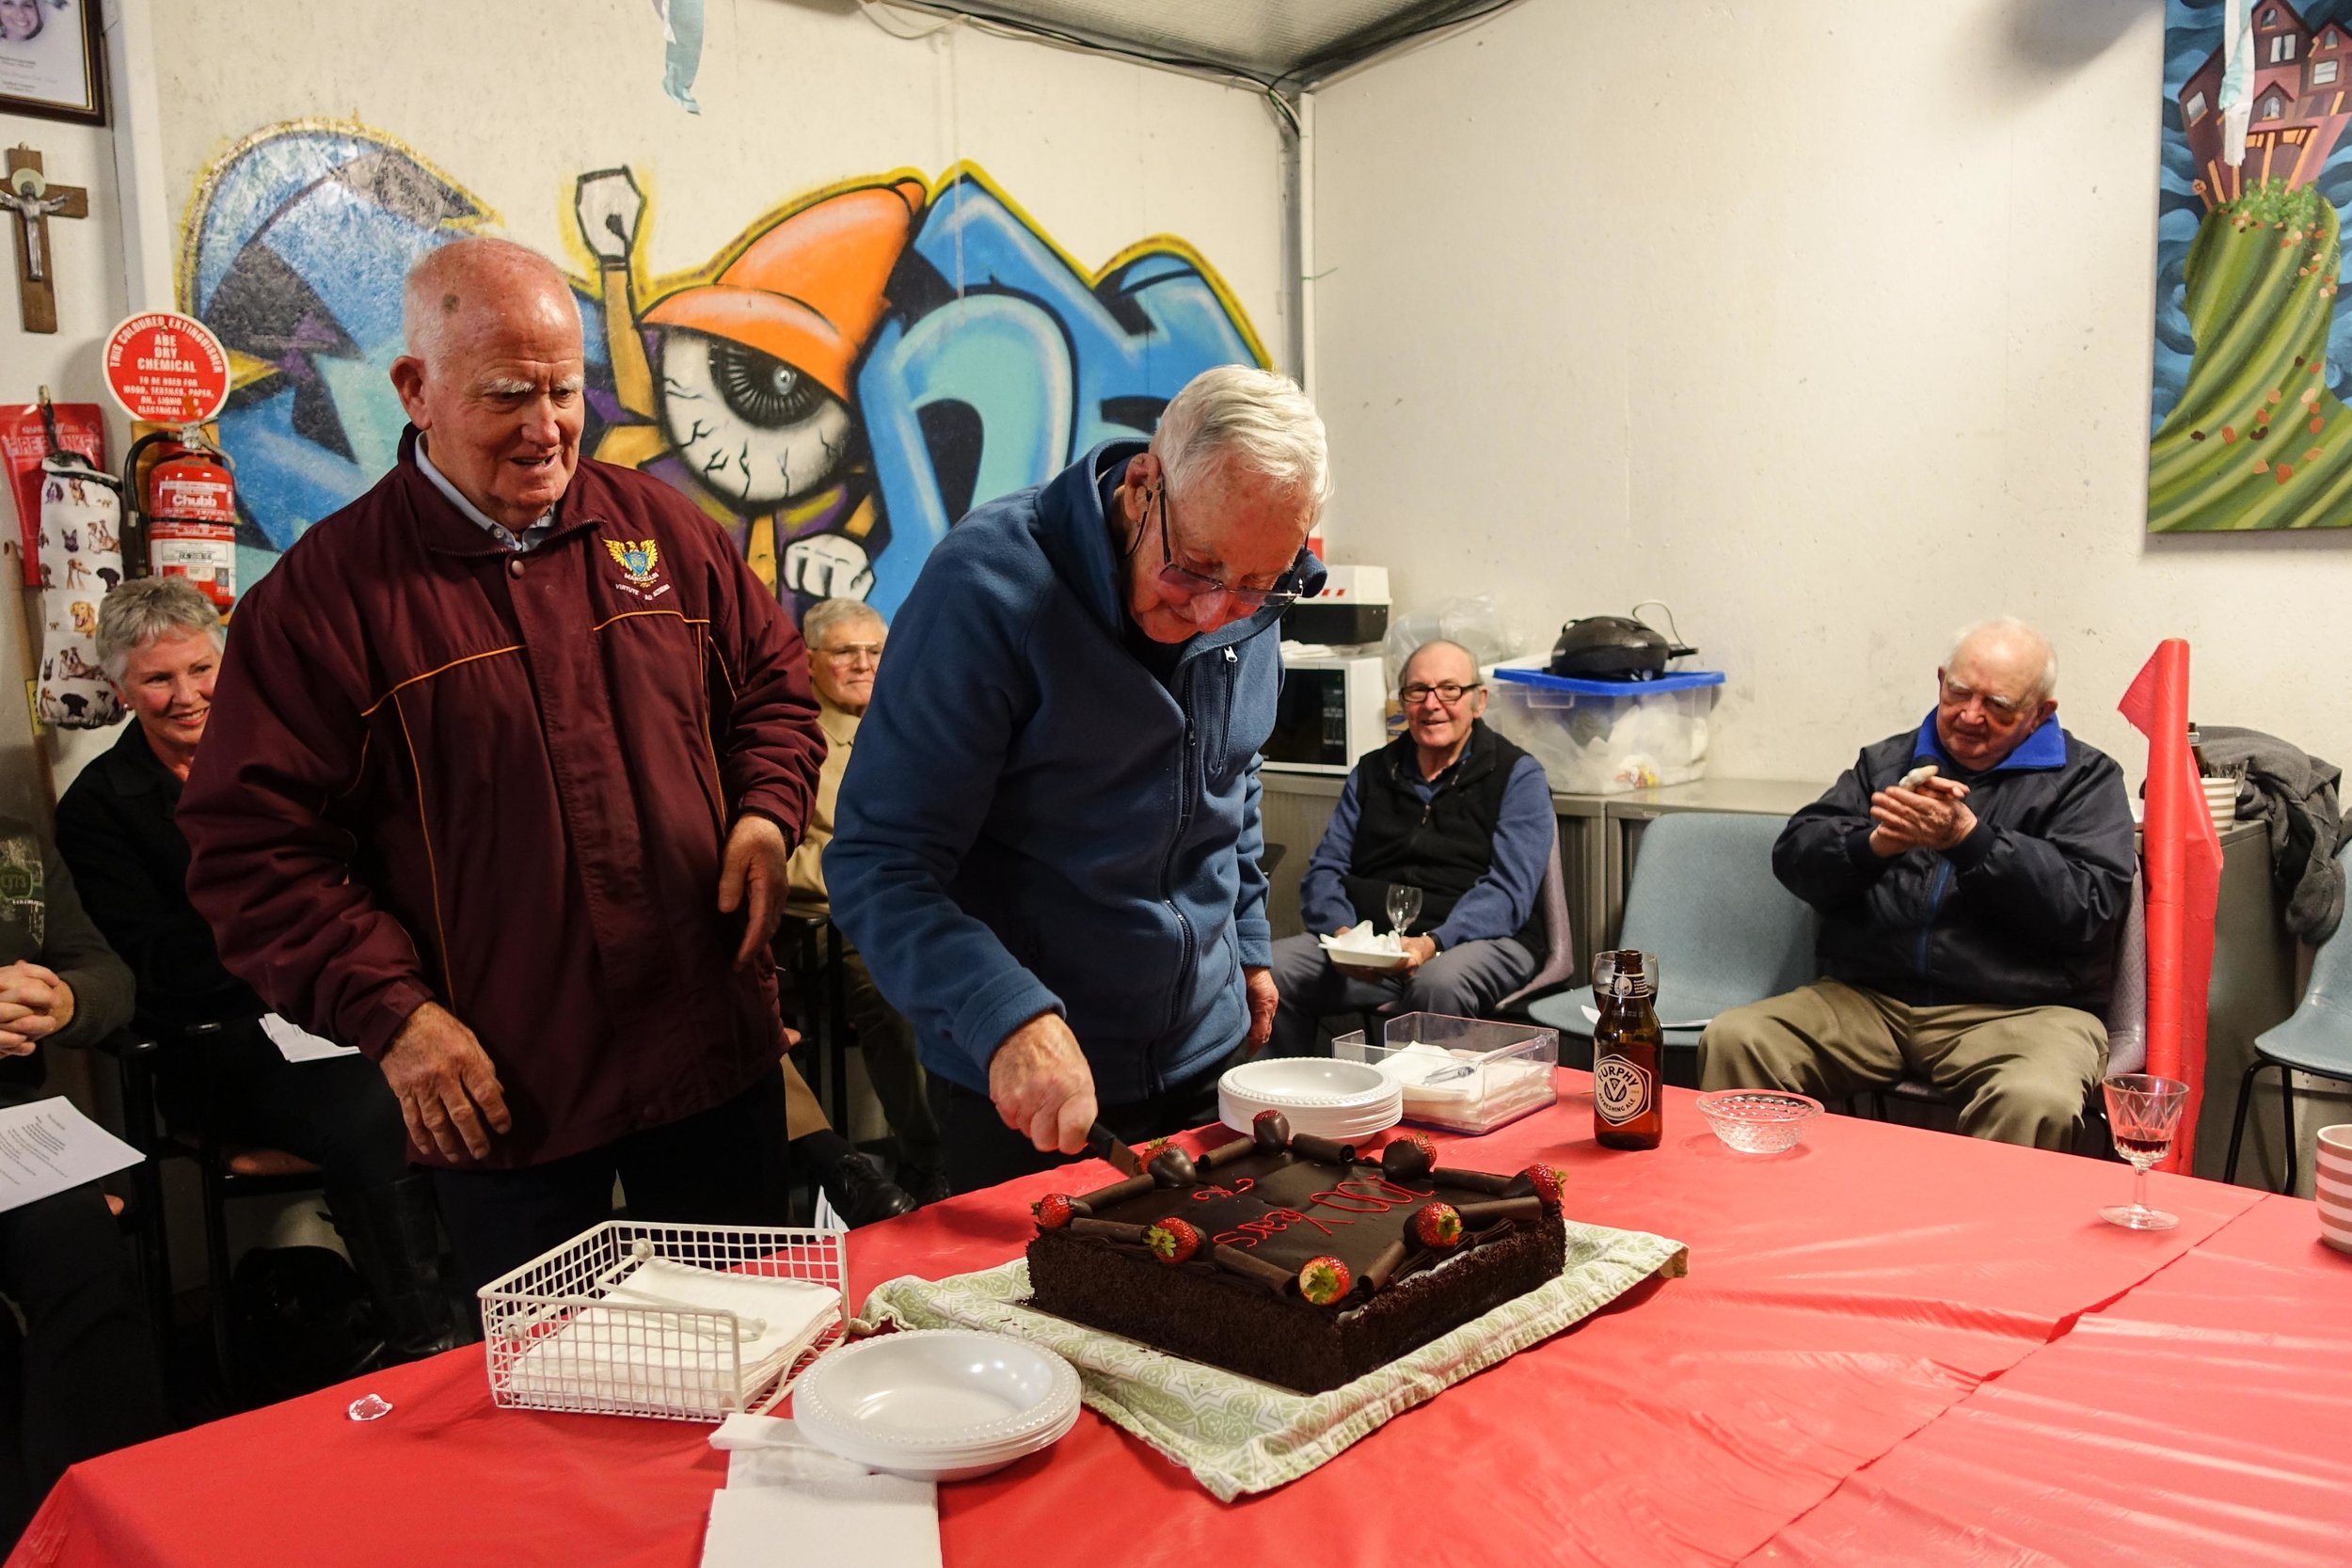 Oldest Brother present cuts cake - Br. Brendan Feehan with Br. Doug Walsh